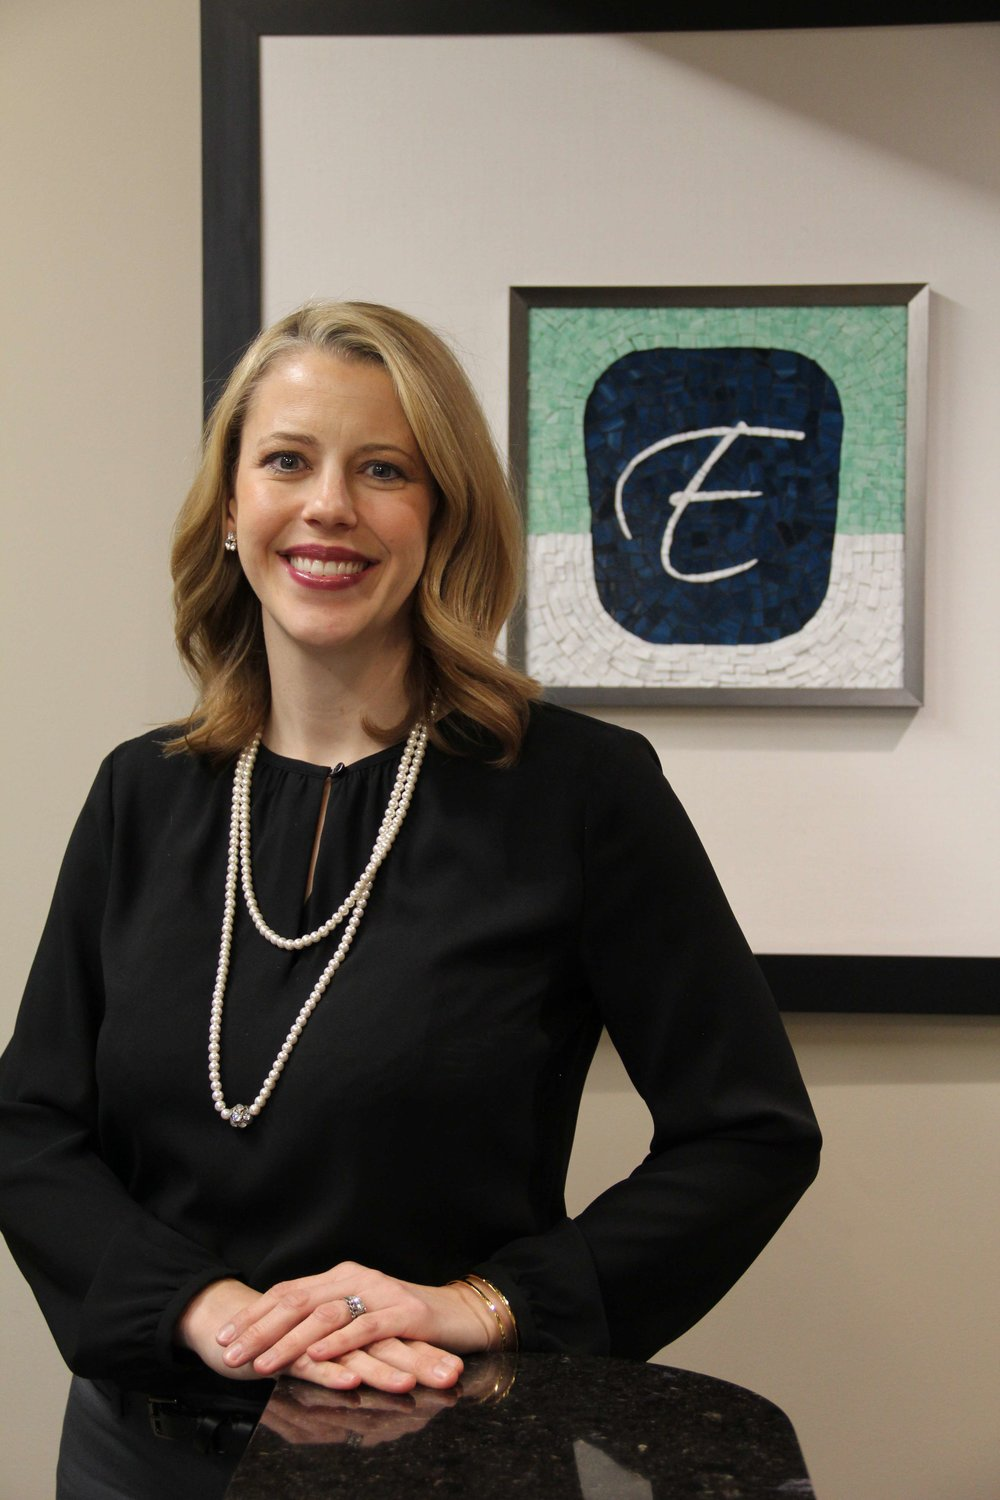 Dr. Holly Ellis, Owner of Ellis Dental